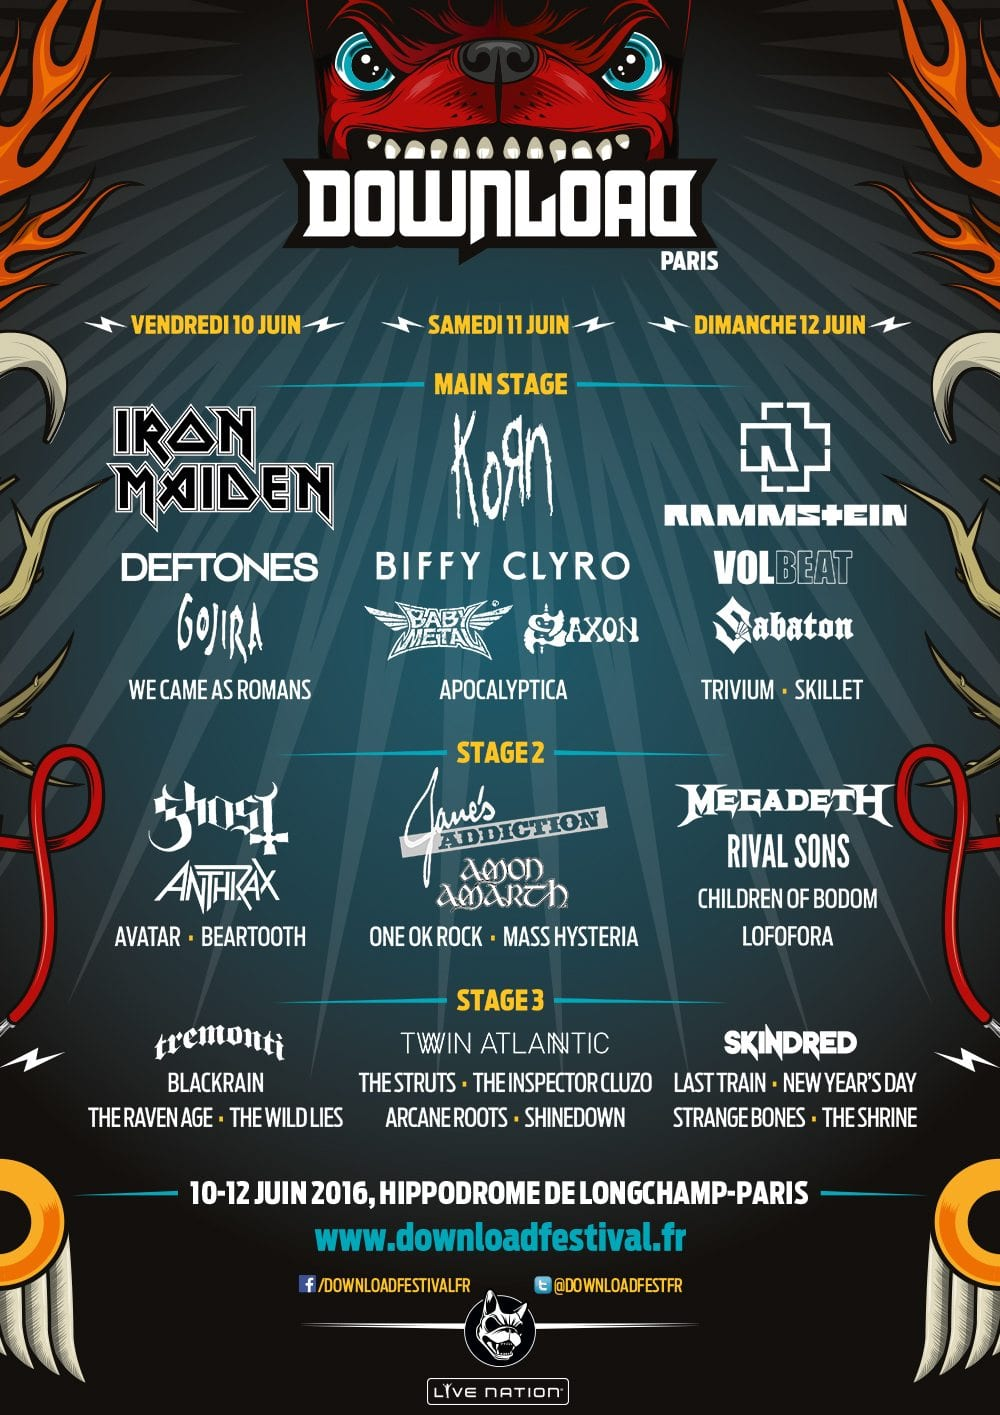 Download Festival Festival Hub  MFW Music Festival Guide